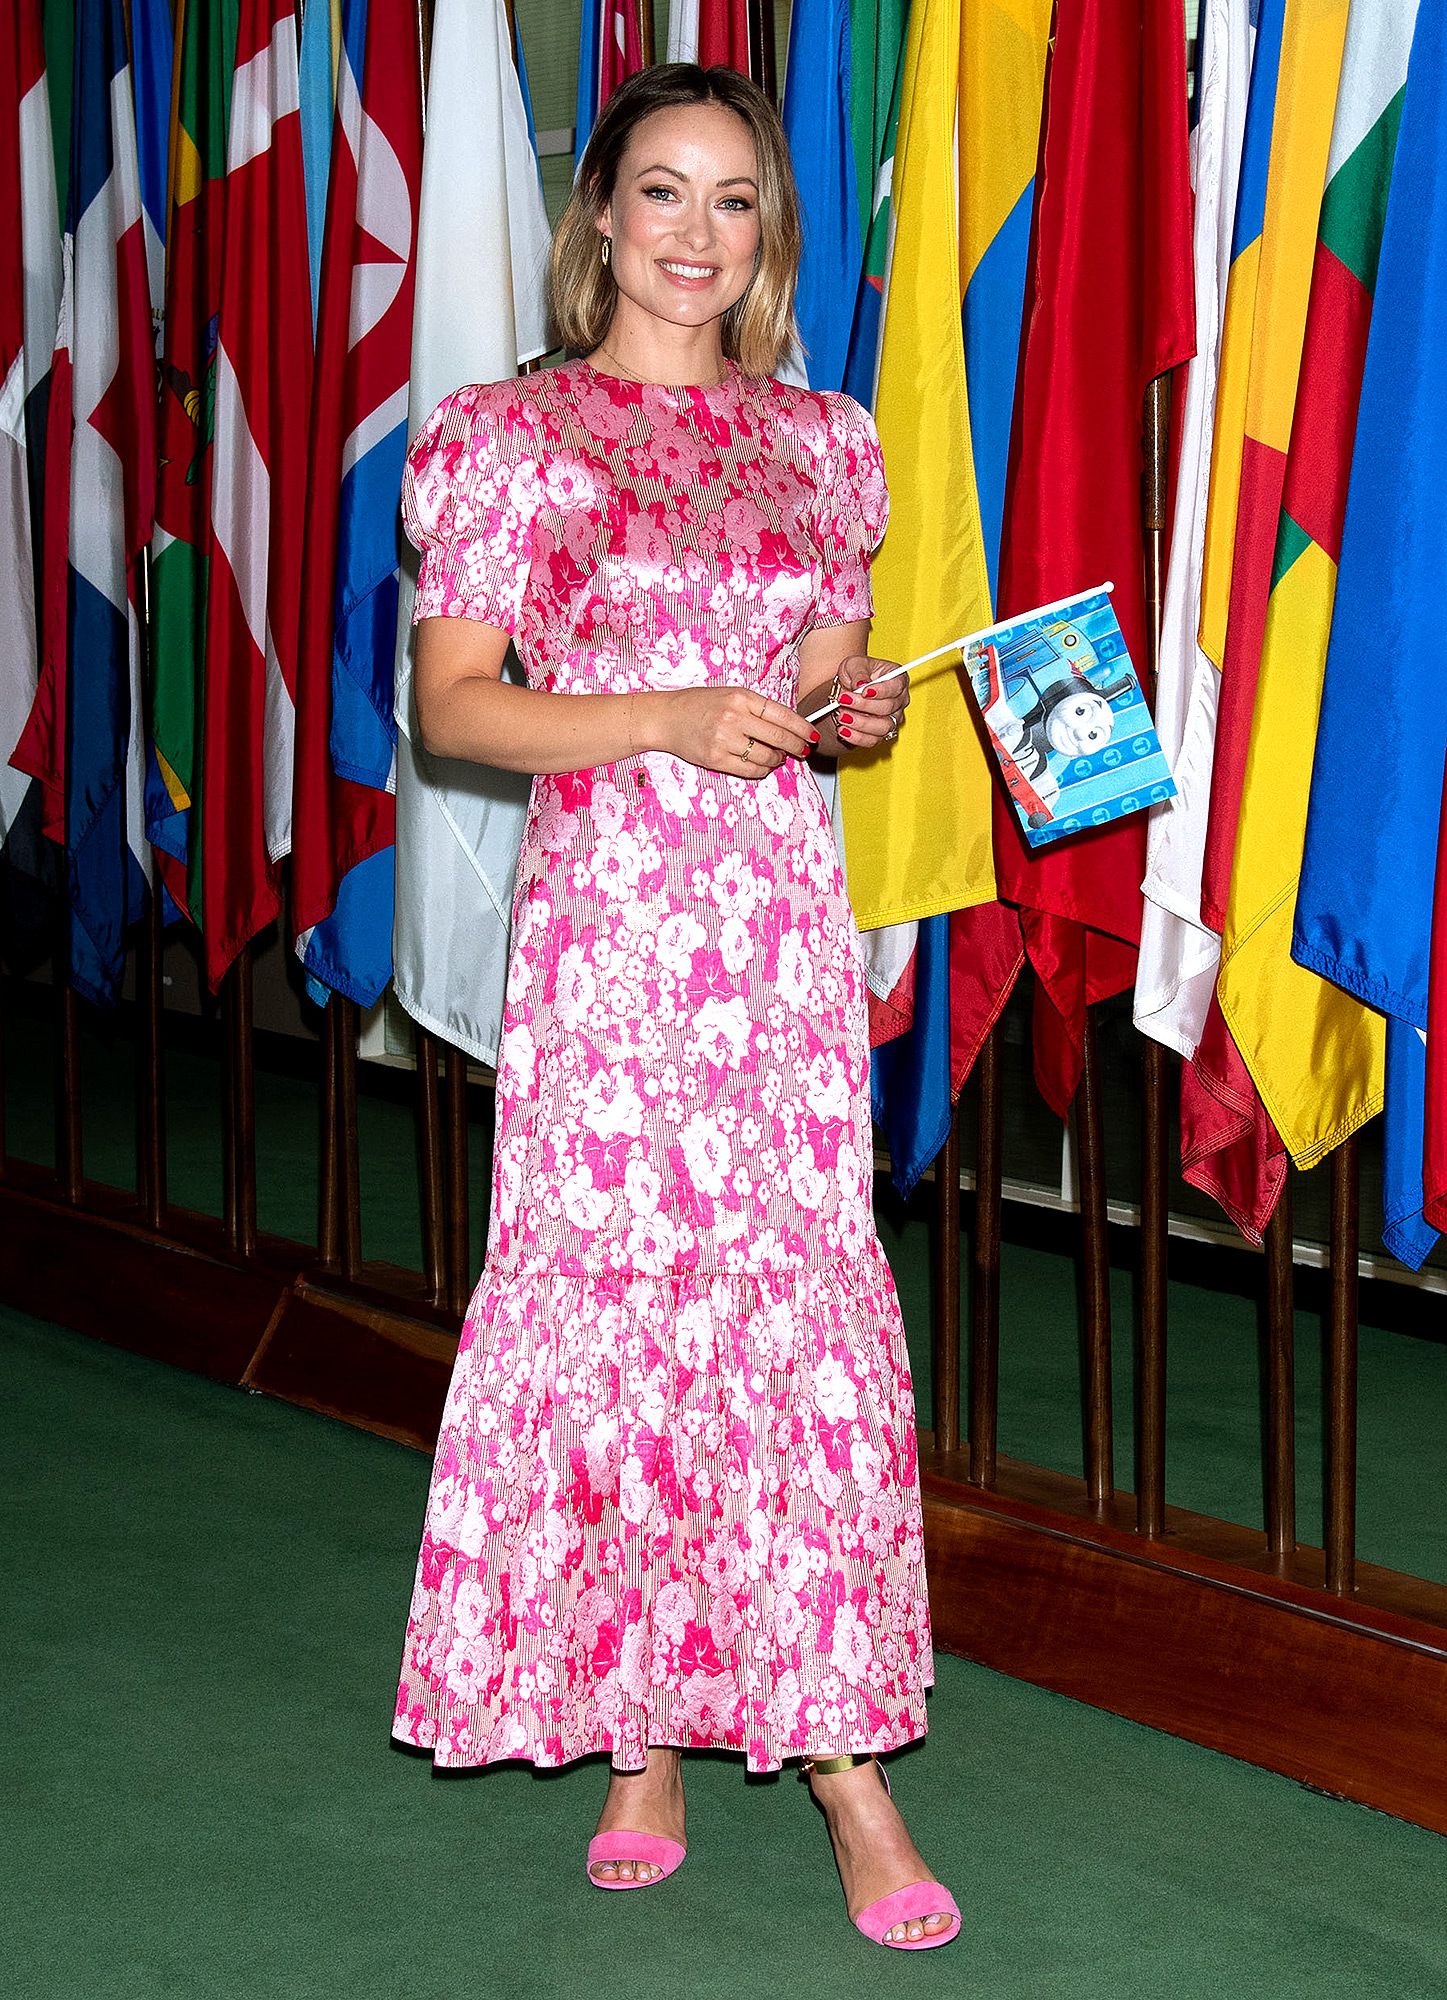 Olivia Wilde Supports the Launch of Thomas & Friends and United Nations